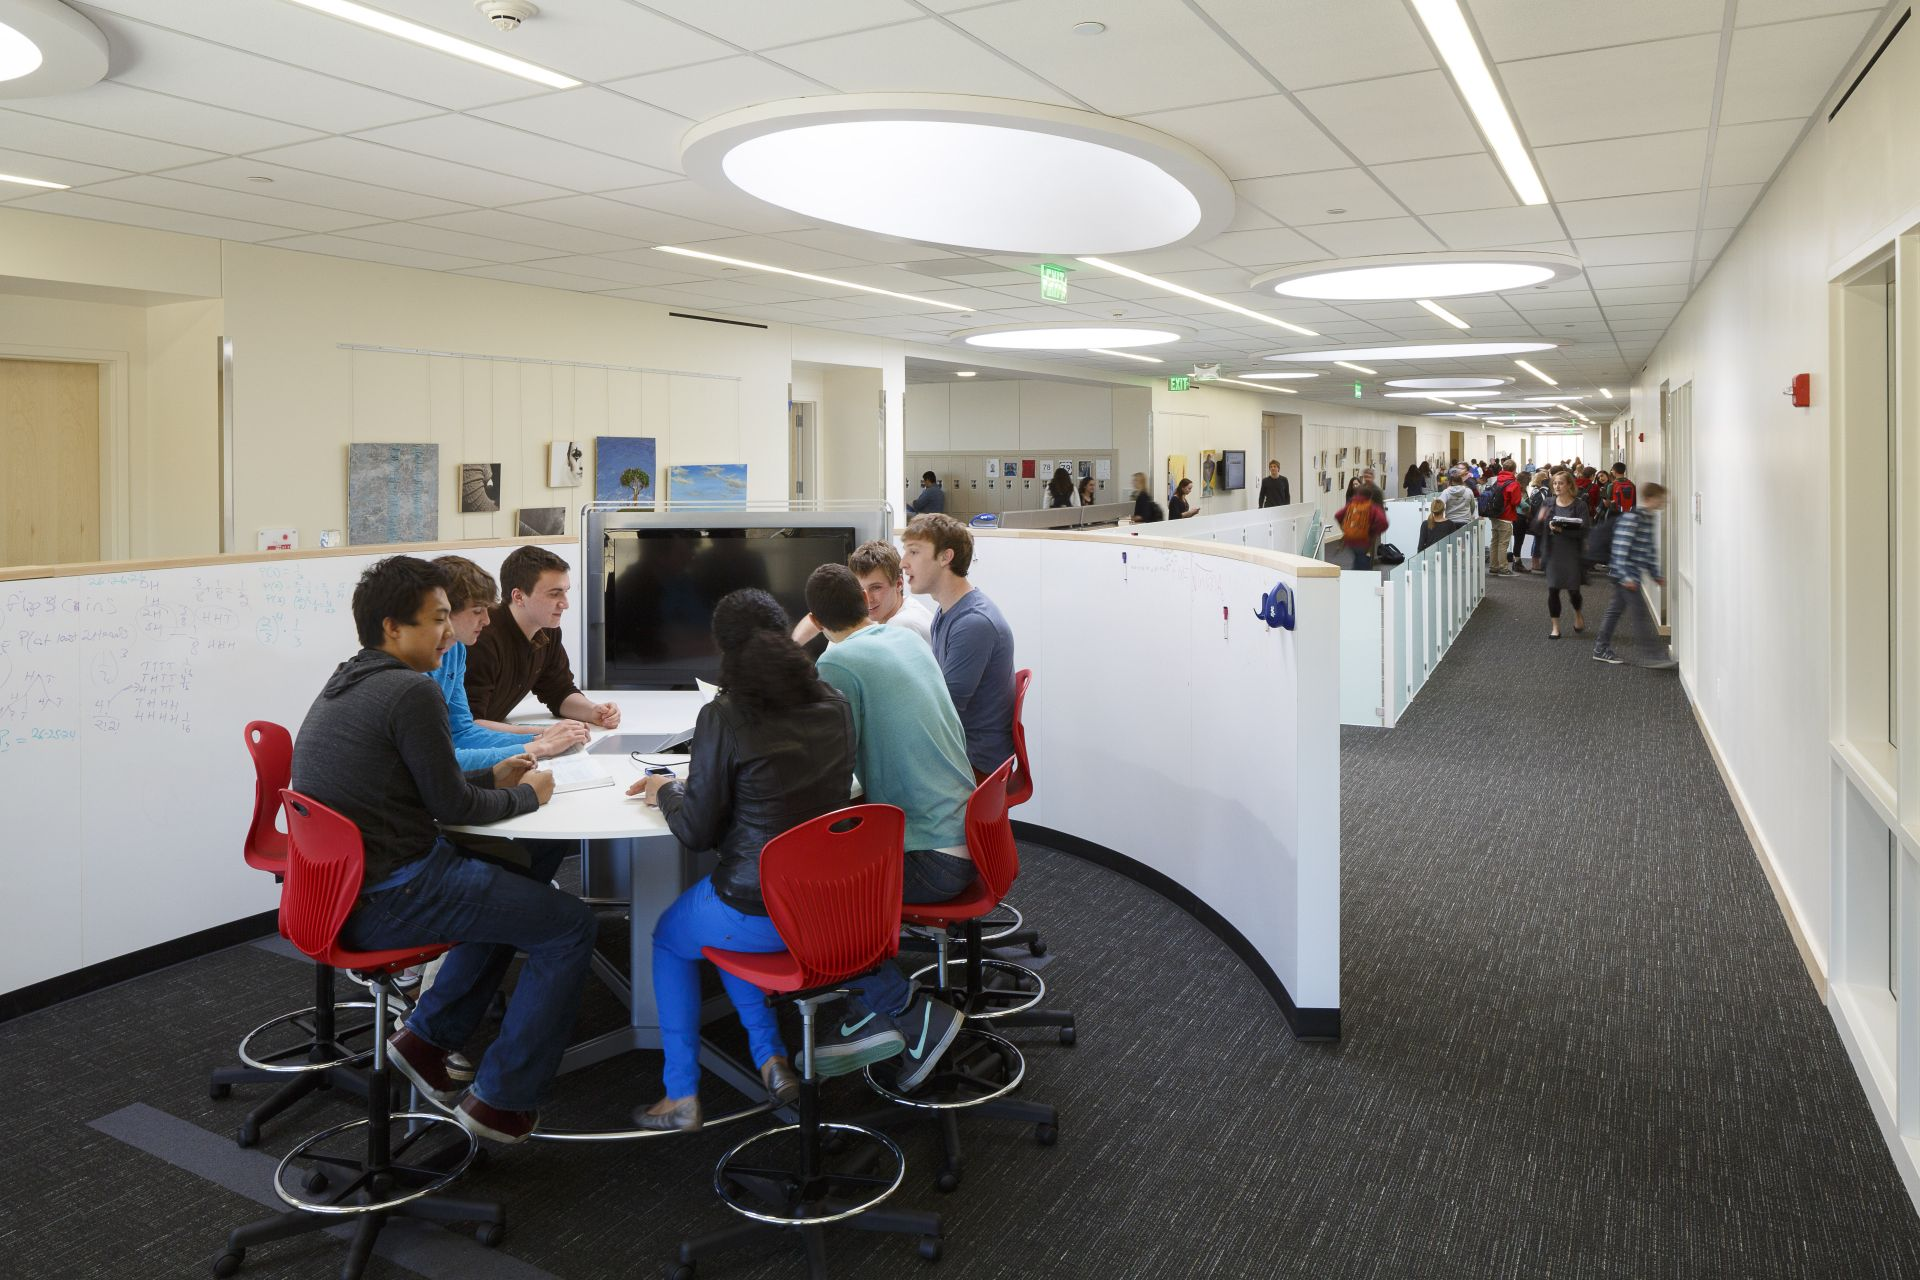 A media center sparks conversation and supports small-group interaction.